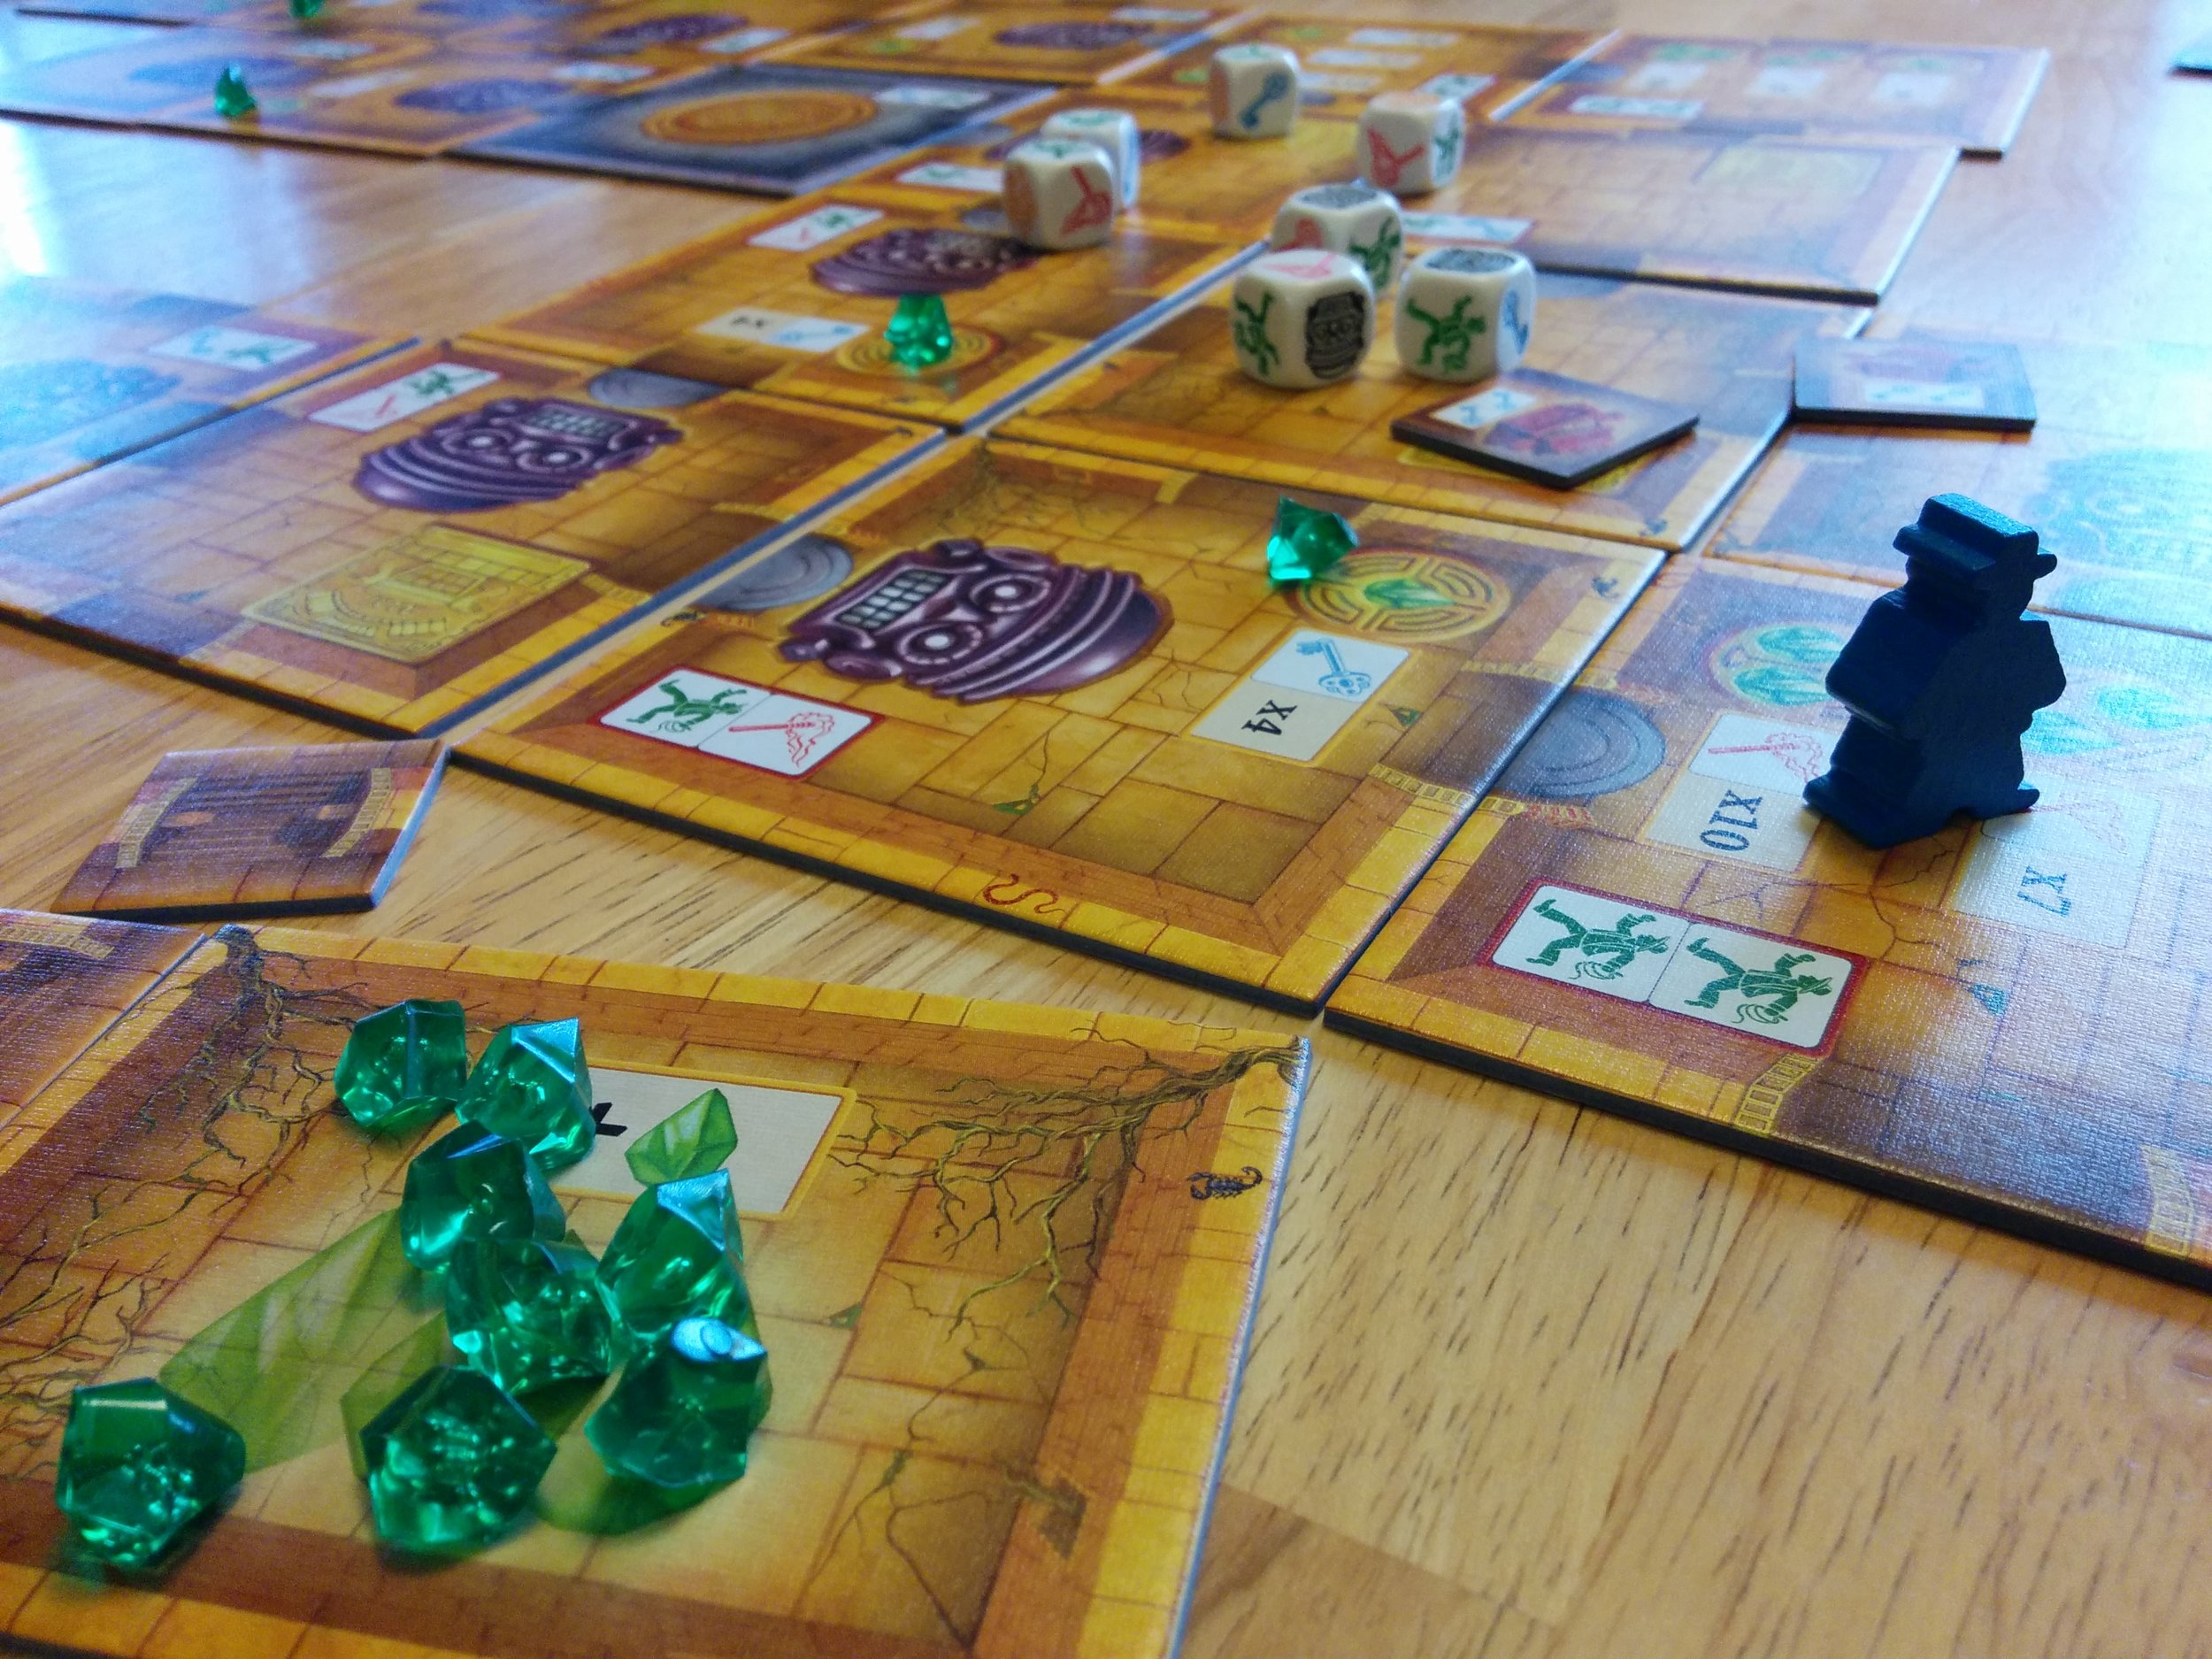 Escape: The Curse of the Temple  - A frantic real-time game of dice chucking exploration